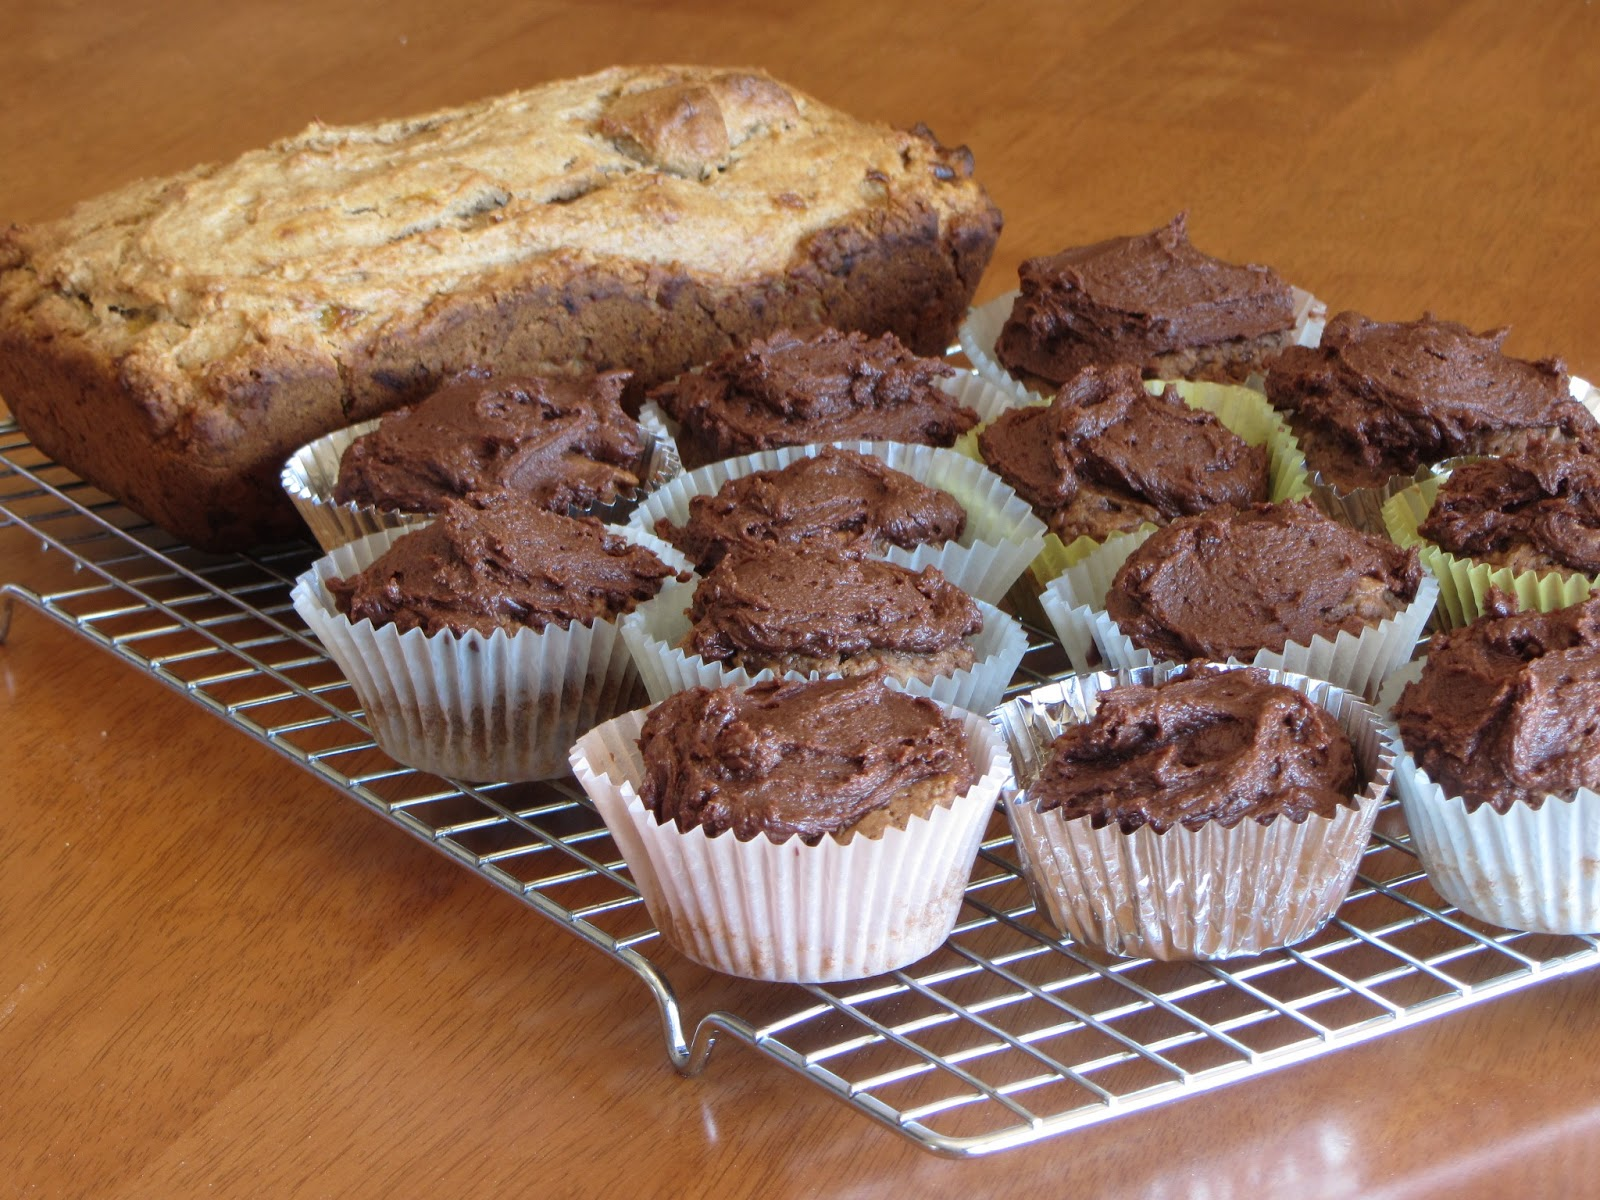 Chocolate Butter Cake Recipe Joy Of Baking: Tracy's Living Cookbook: Chocolate Peanut Butter Cupcakes